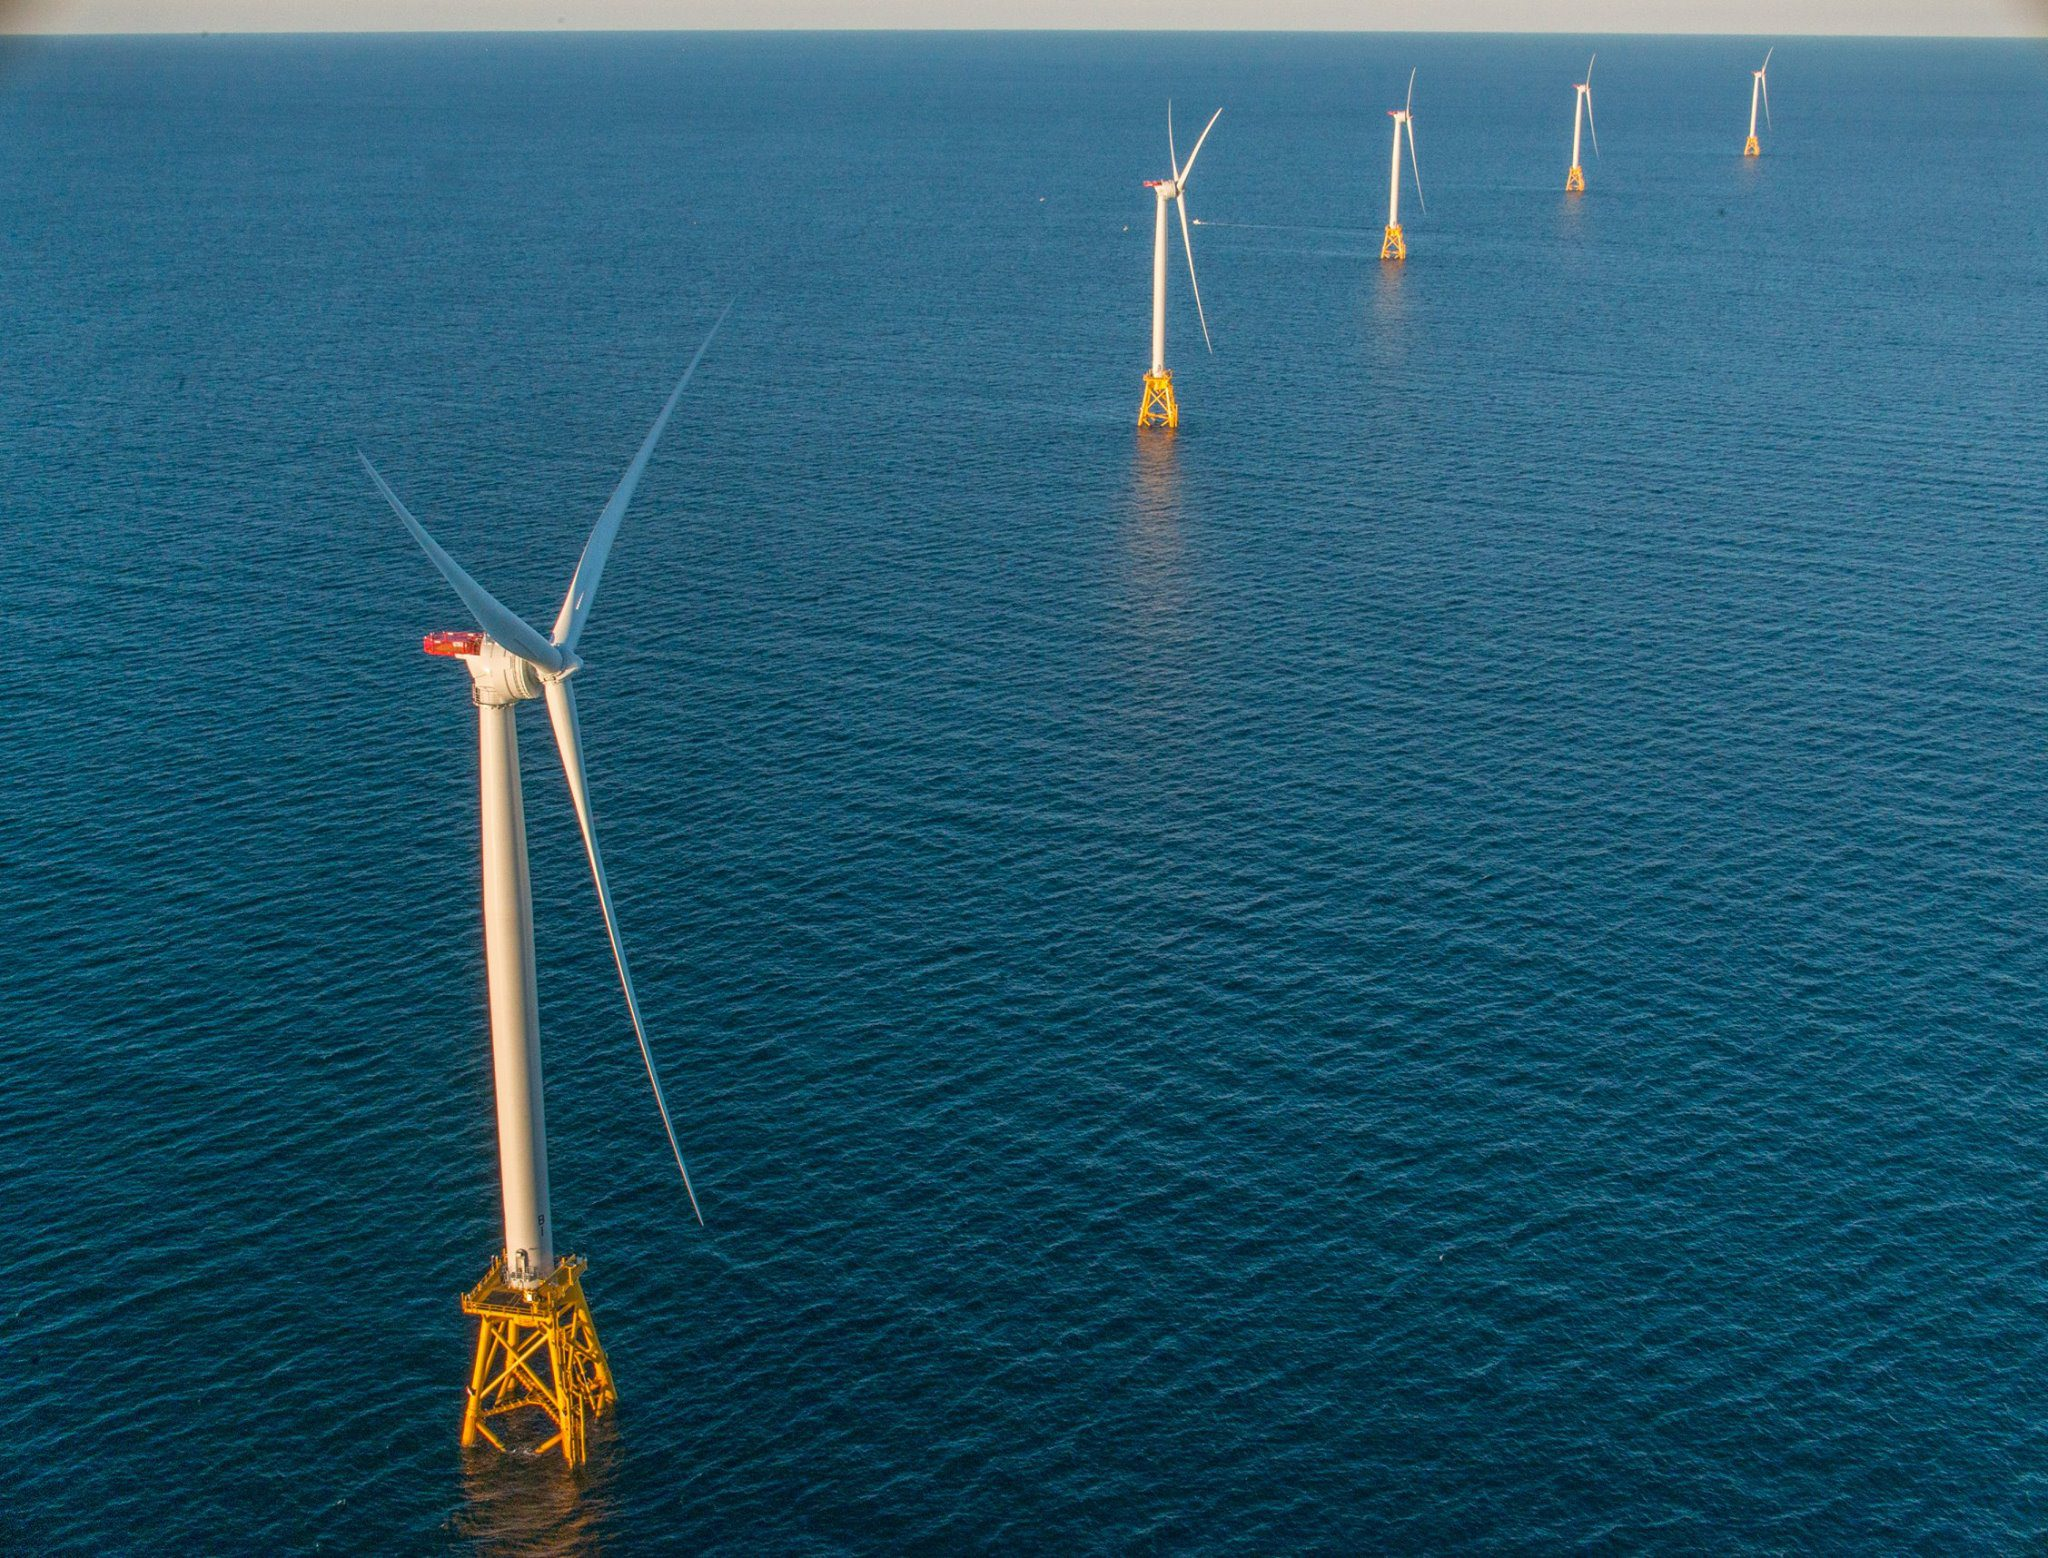 U.S. Offshore Wind Lease Bids at $285 Million, Bidding to Continue Friday